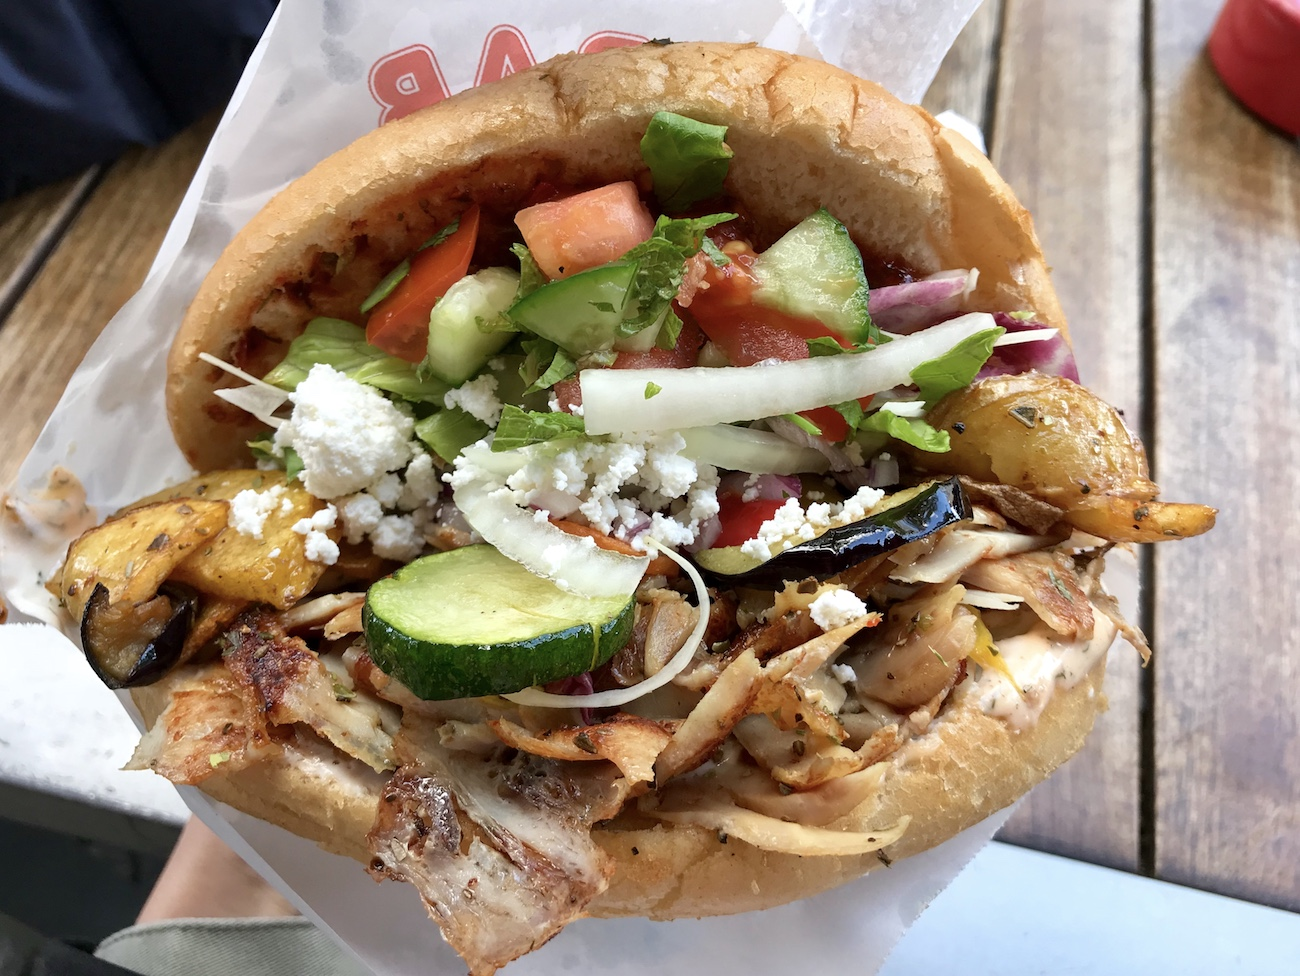 Doner kebab in Berlin, Germany